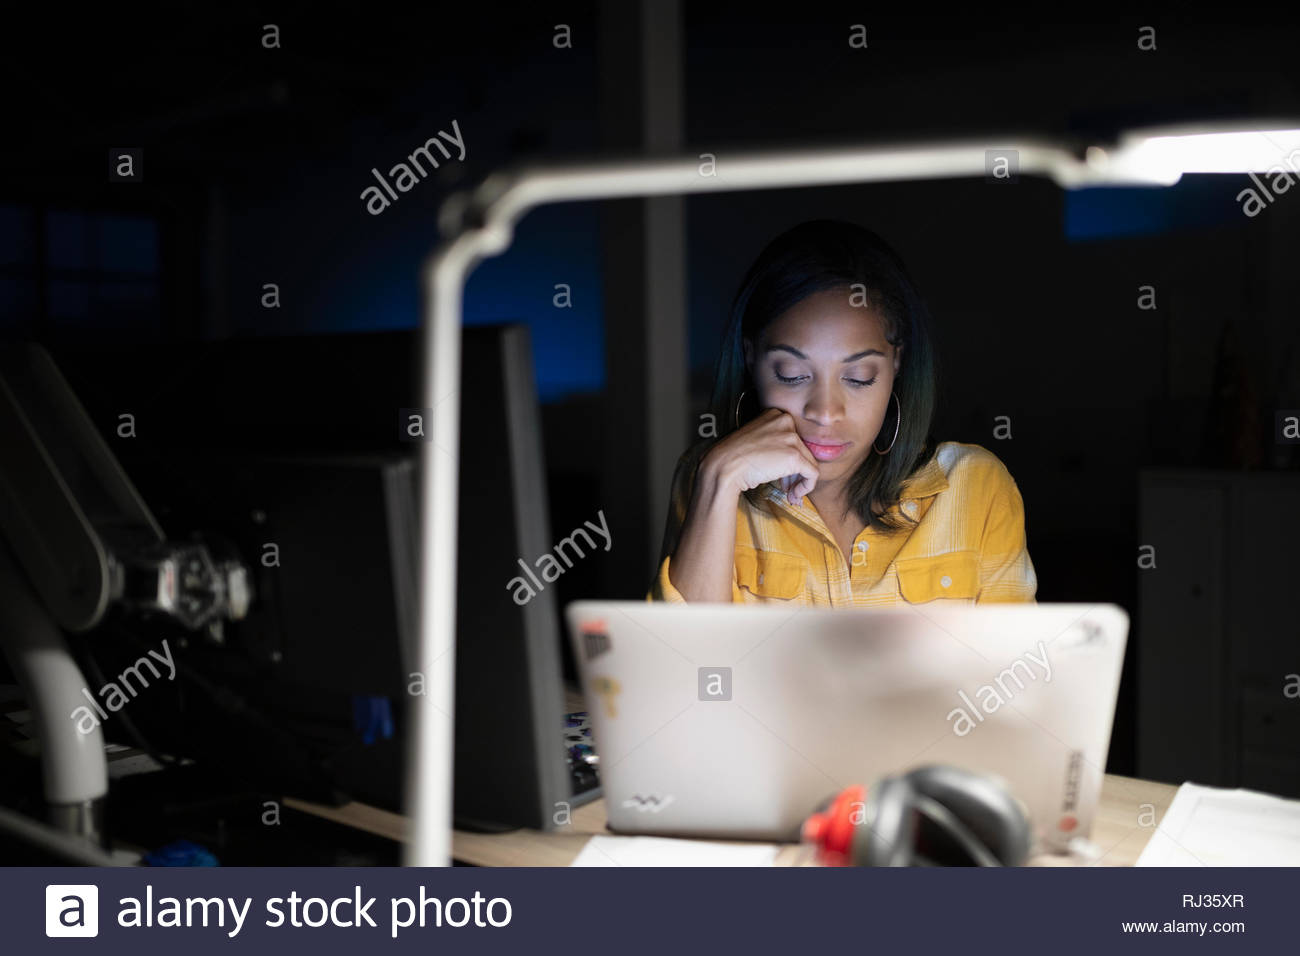 Dedicated businesswoman working at laptop in dark office - Stock Image